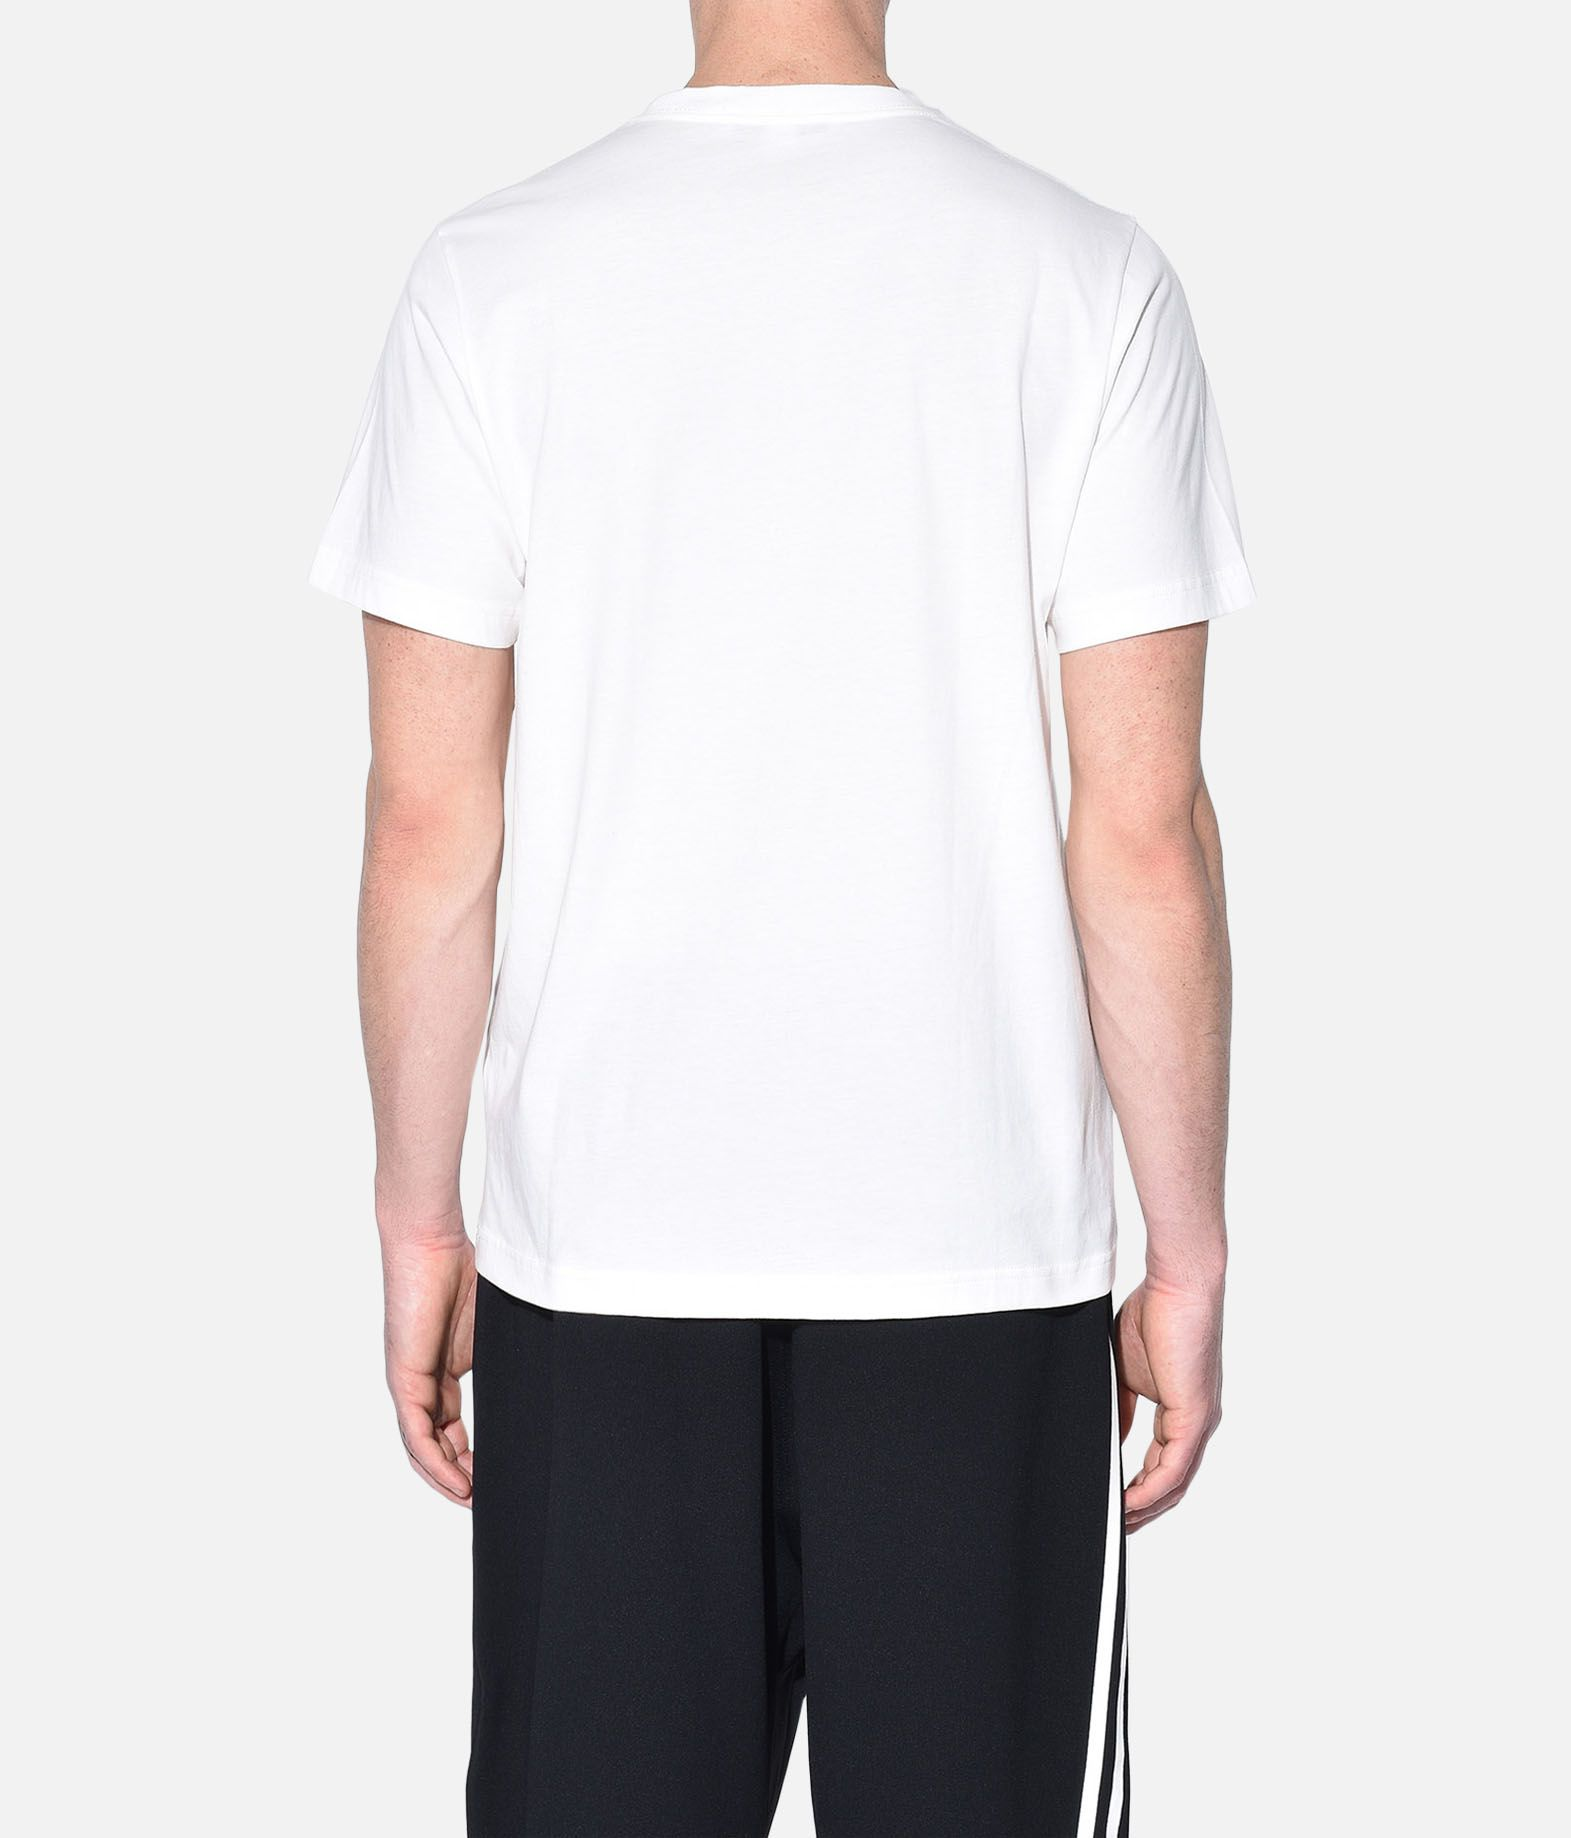 Y-3 Y-3 Classic Tee Short sleeve t-shirt Man d